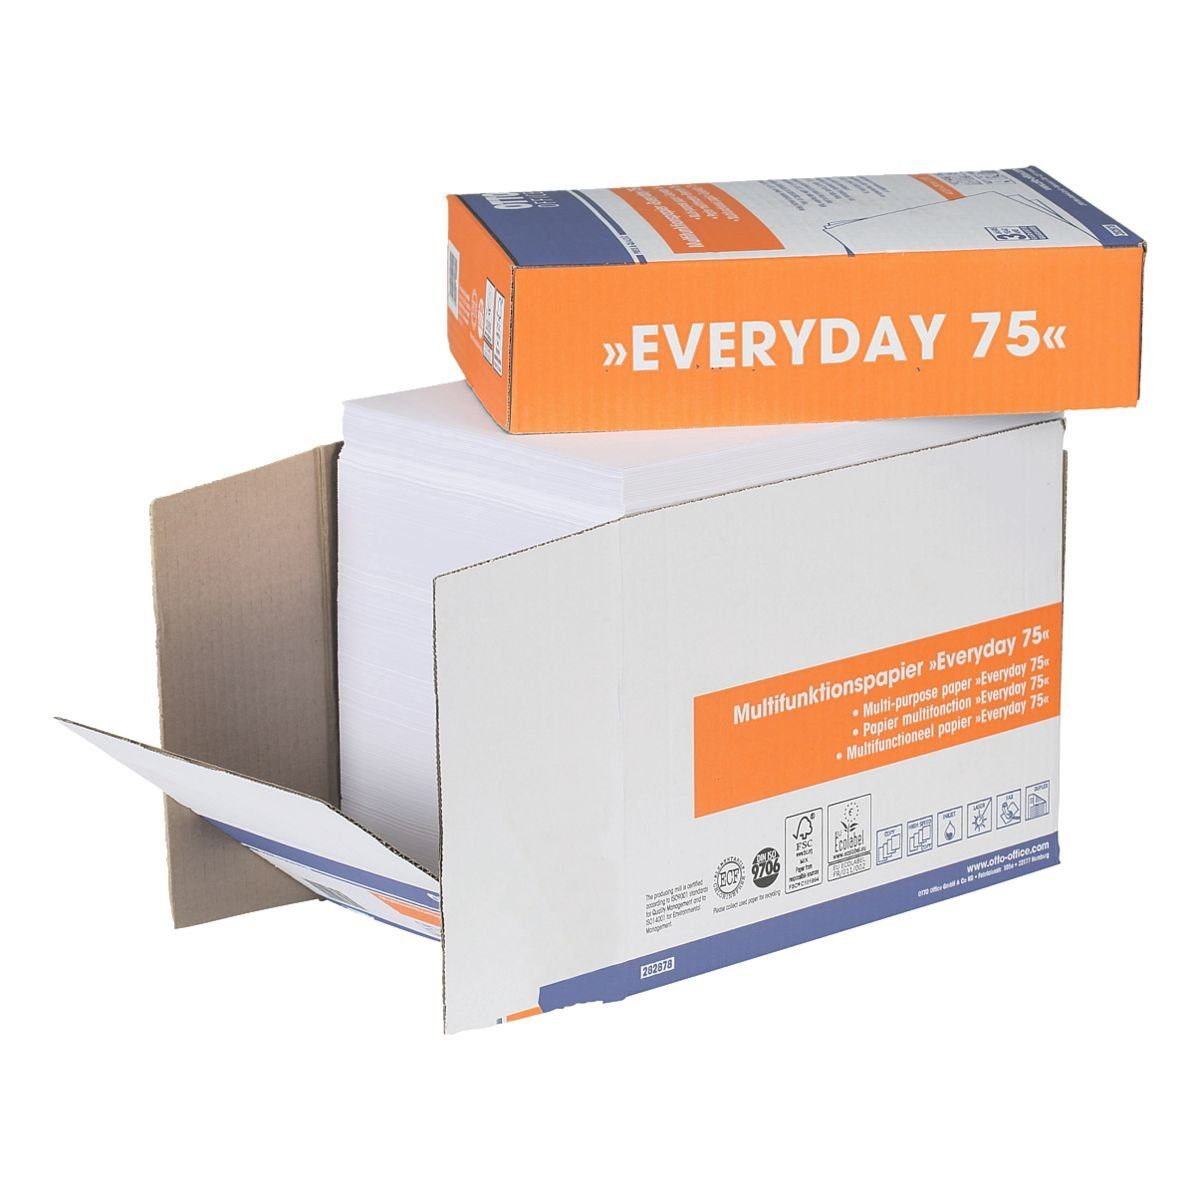 OTTOOFFICE STANDARD Öko-Box Multifunktionales Druckerpapier »Everyday 75«